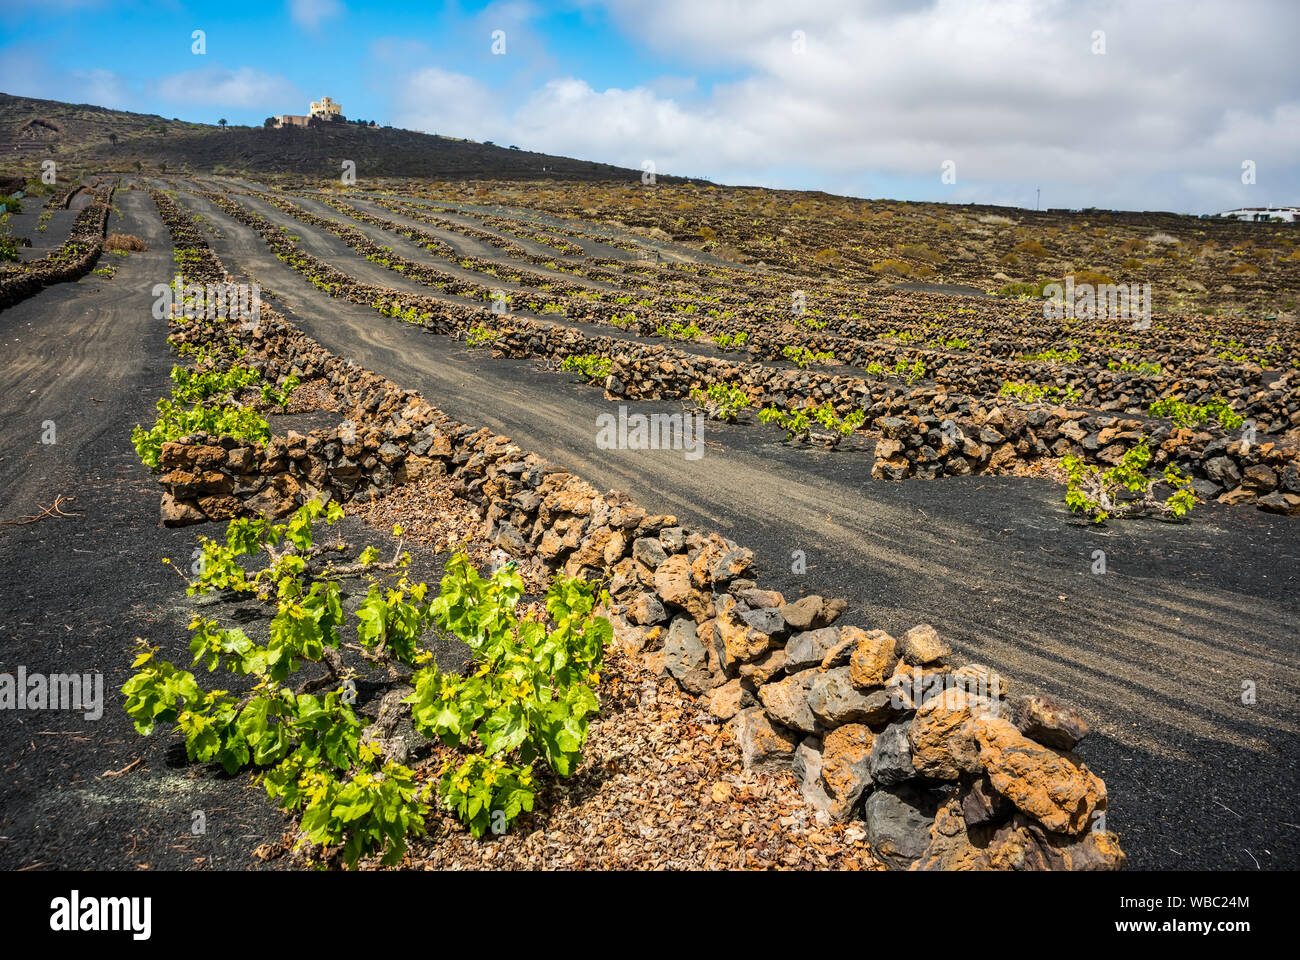 Stunning landscape with volcanic vineyards. Traditional wine production of Lanzarote. Canary Islands. Spain Stock Photo